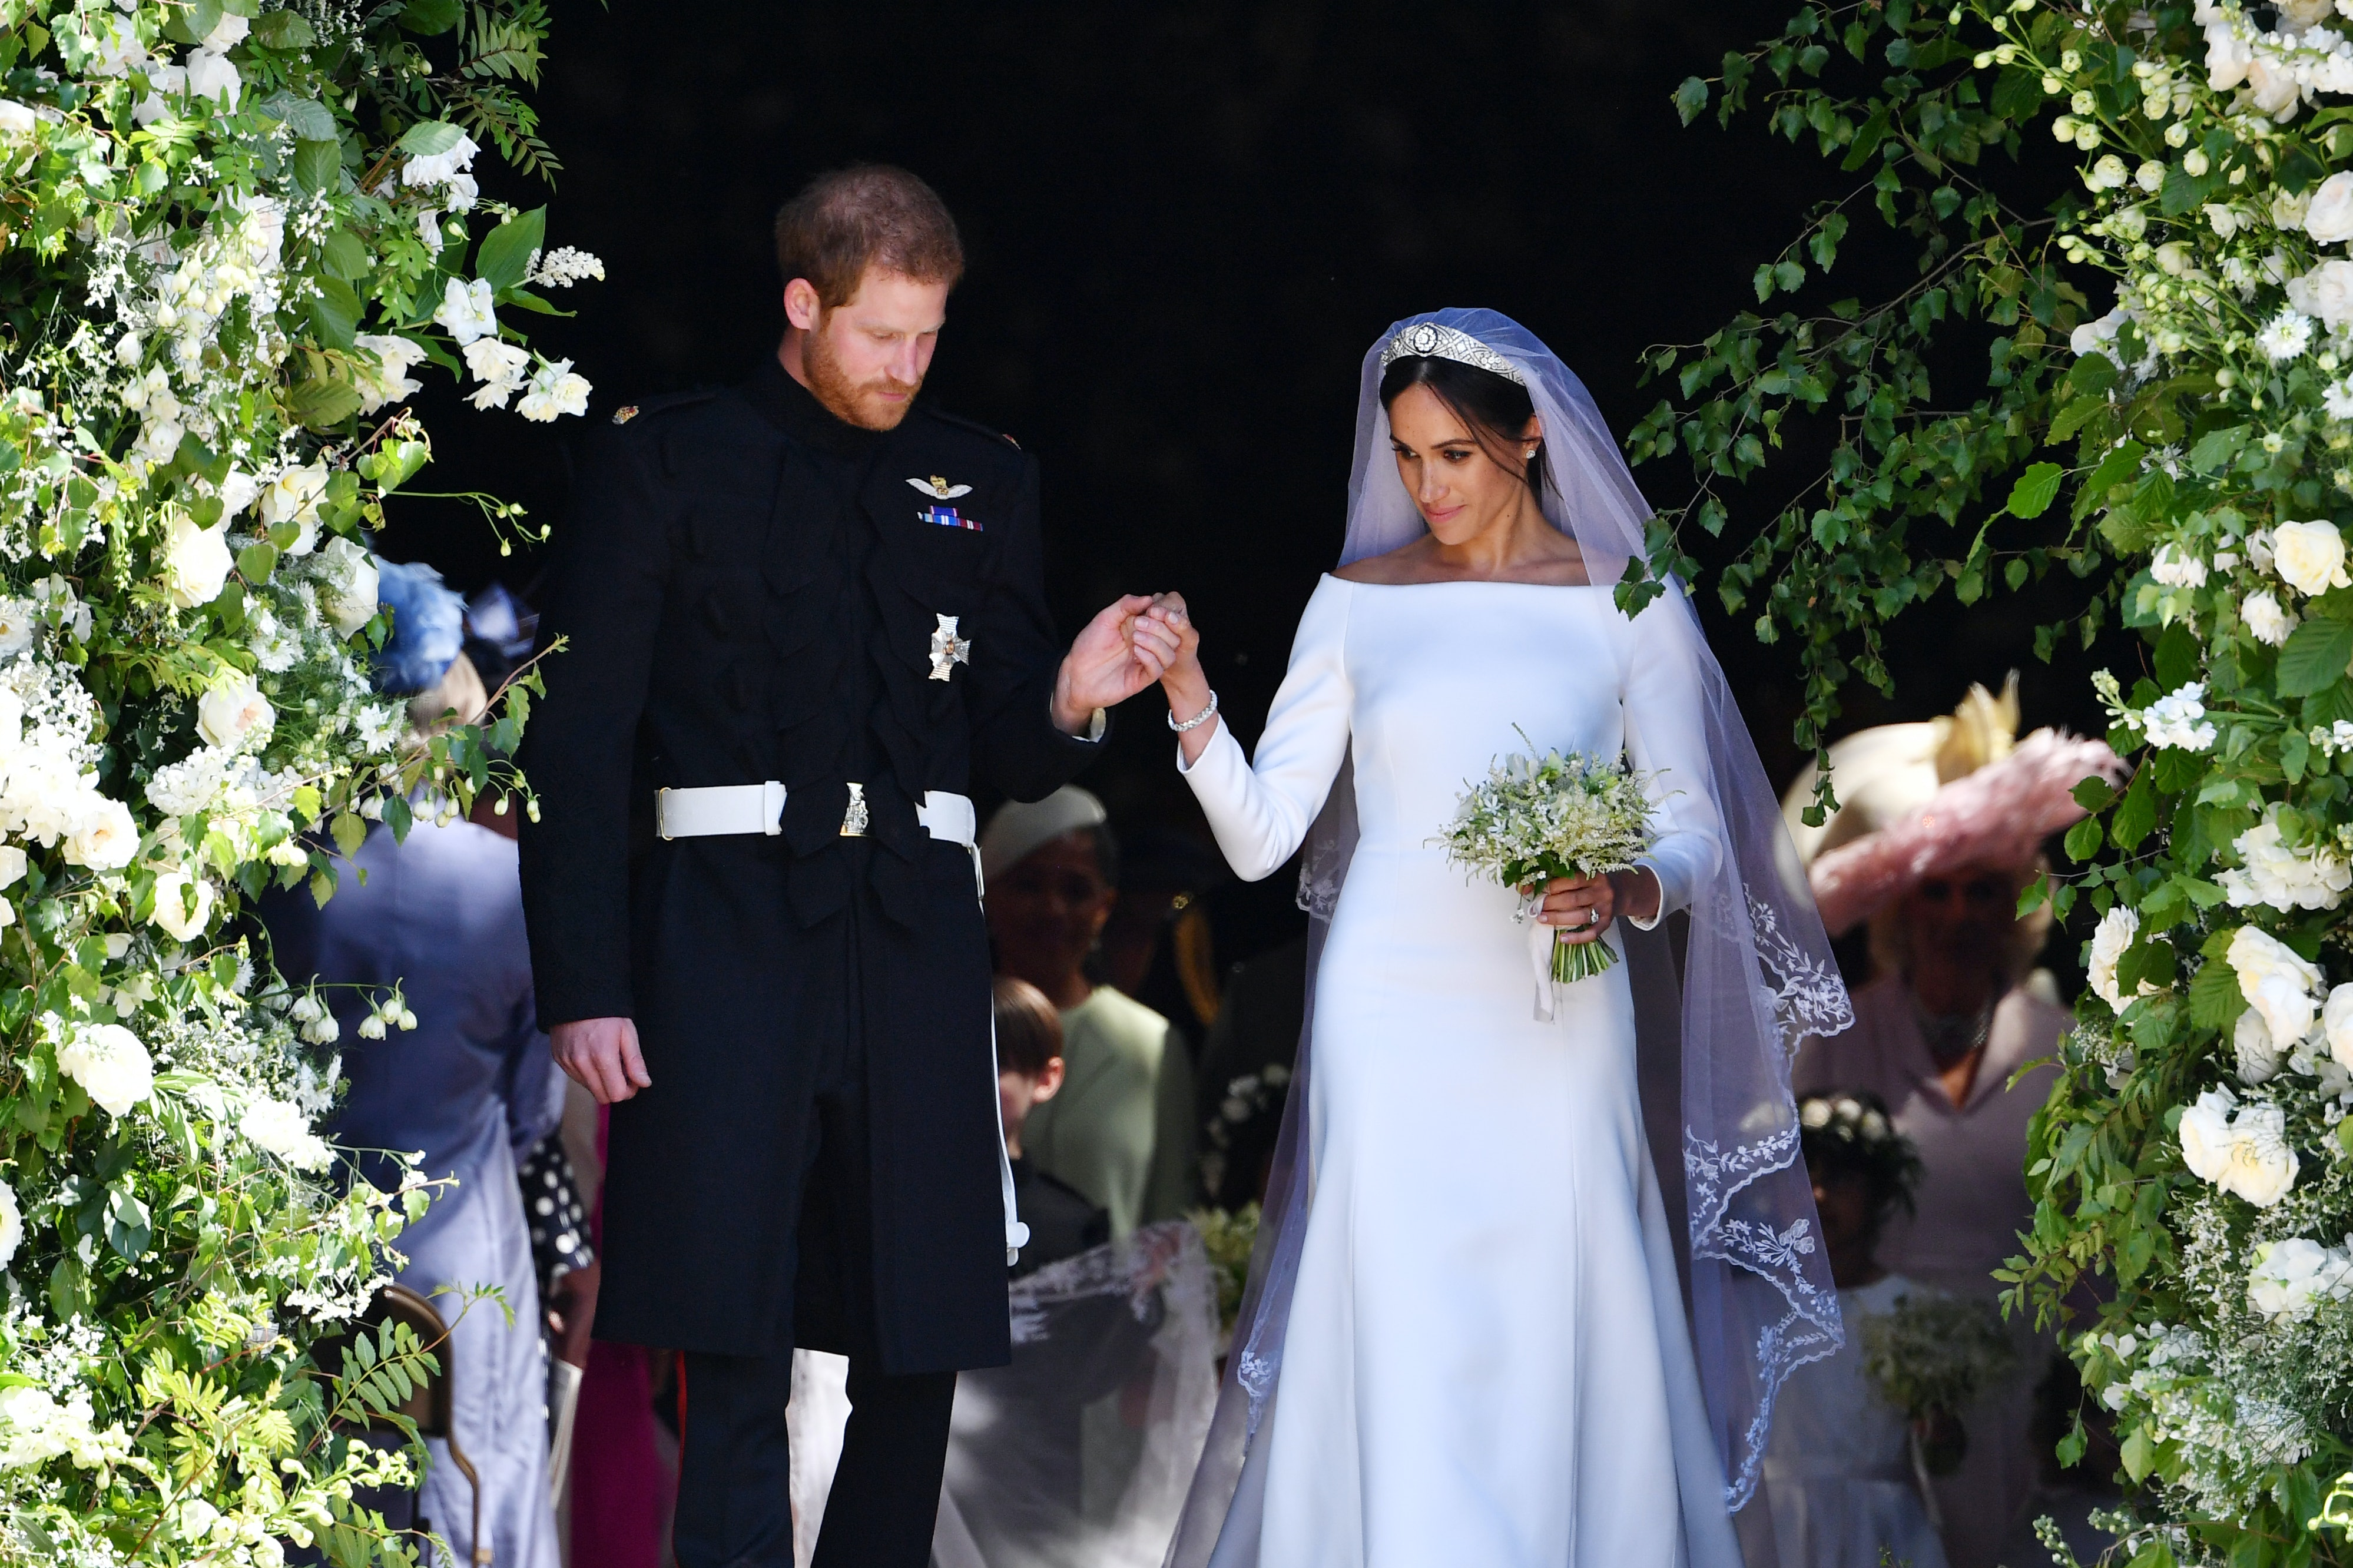 what does meghan markle s second wedding dress look like it s very reflective of her sleek classic style https www bustle com p what does meghan markles second wedding dress look like its very reflective of her sleek classic style 9137740